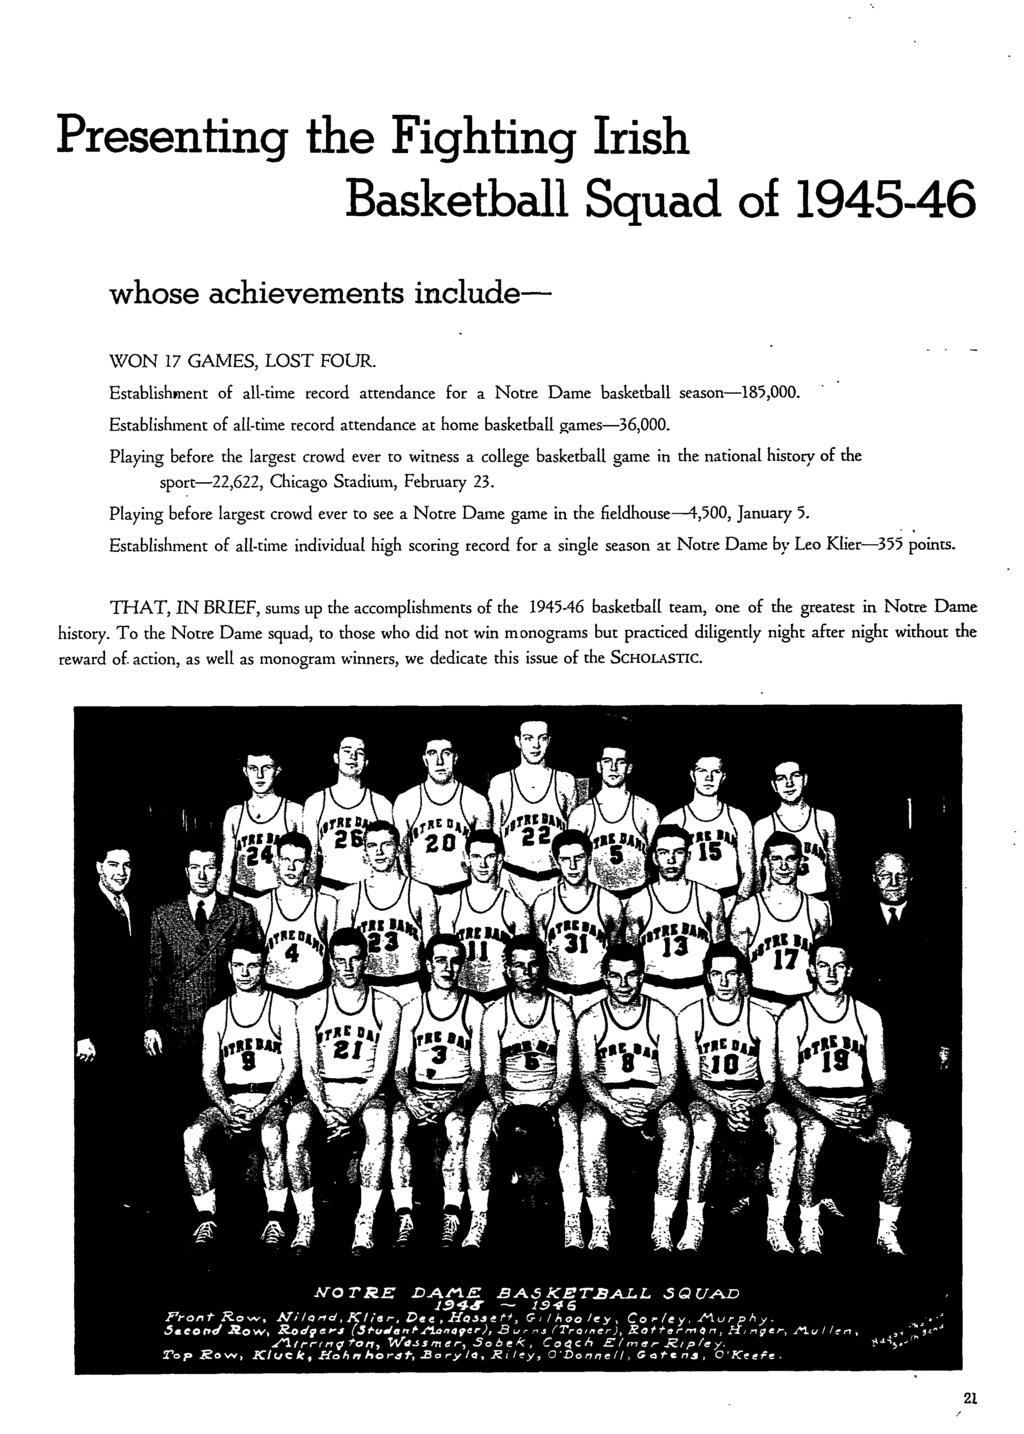 Presenting the Fighting Irish Basketball Squad of 1945-46 whose achievements include- WON 17 GAMES, LOST FOUR. Establishment of all-time record attendance for a Notre Dame basketball season 185,000.